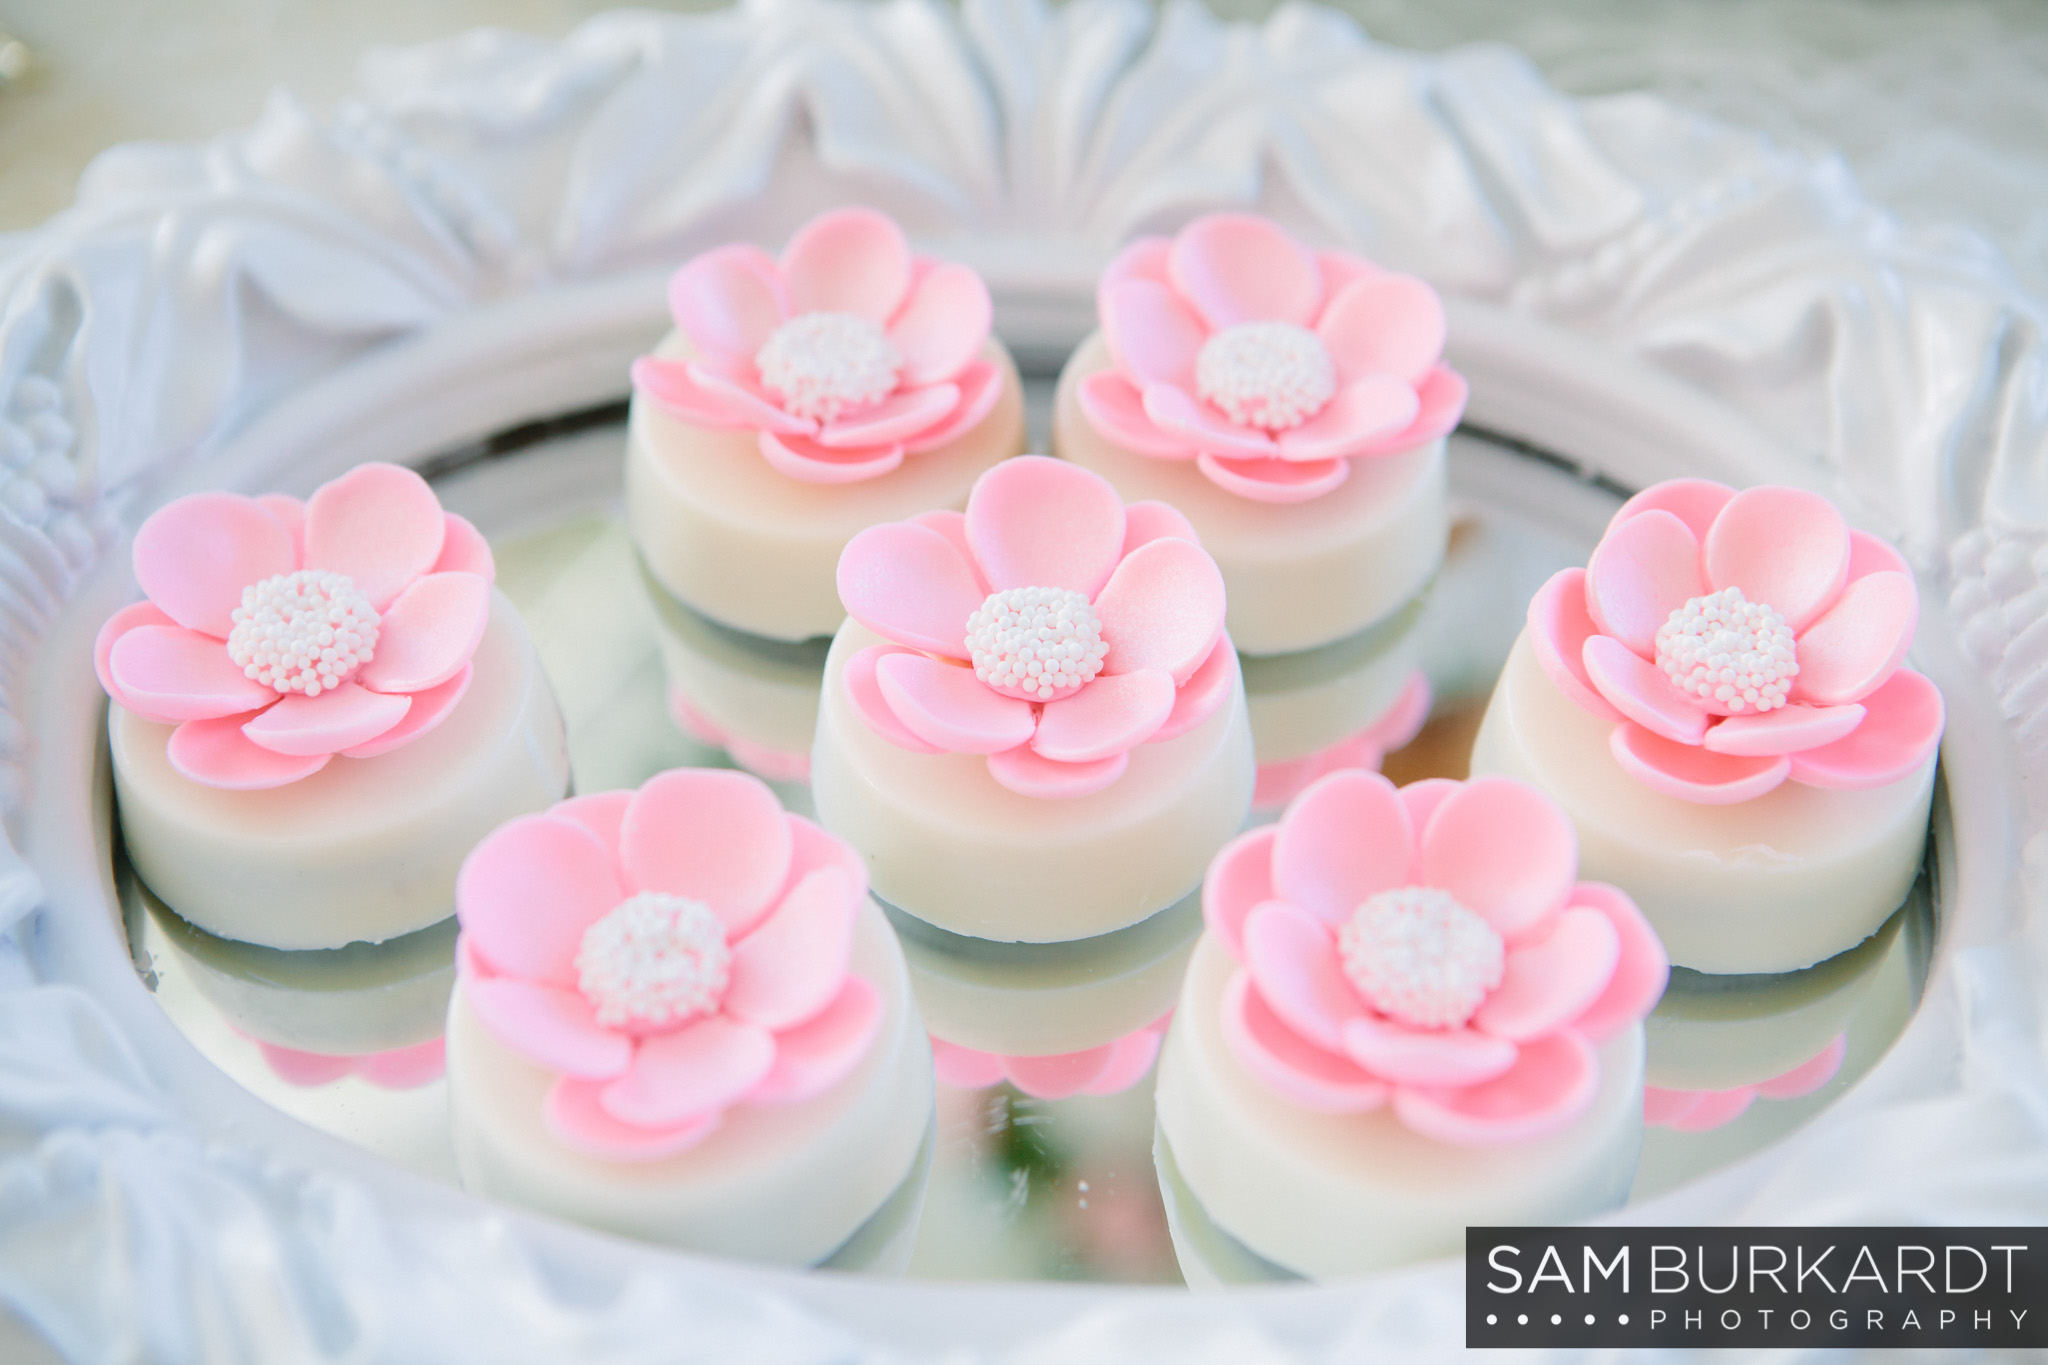 samburkardt_bridal_shower_trumbull_connecticut_photography_wedding_0016.jpg